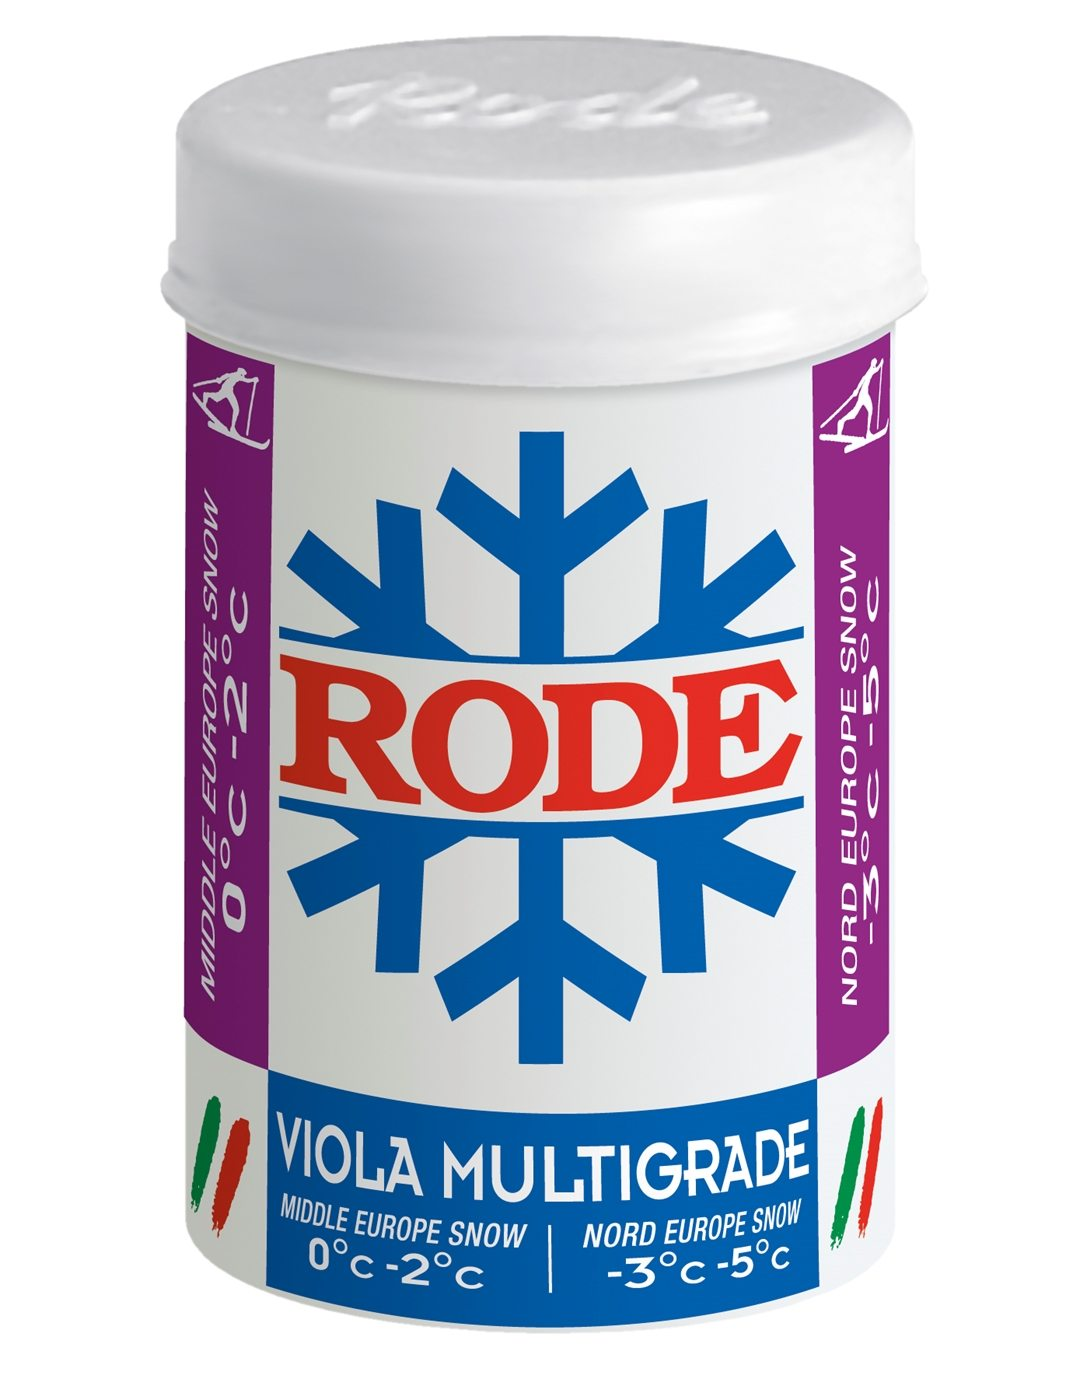 Rode P46 Viola Multigrade 0 - -2 C